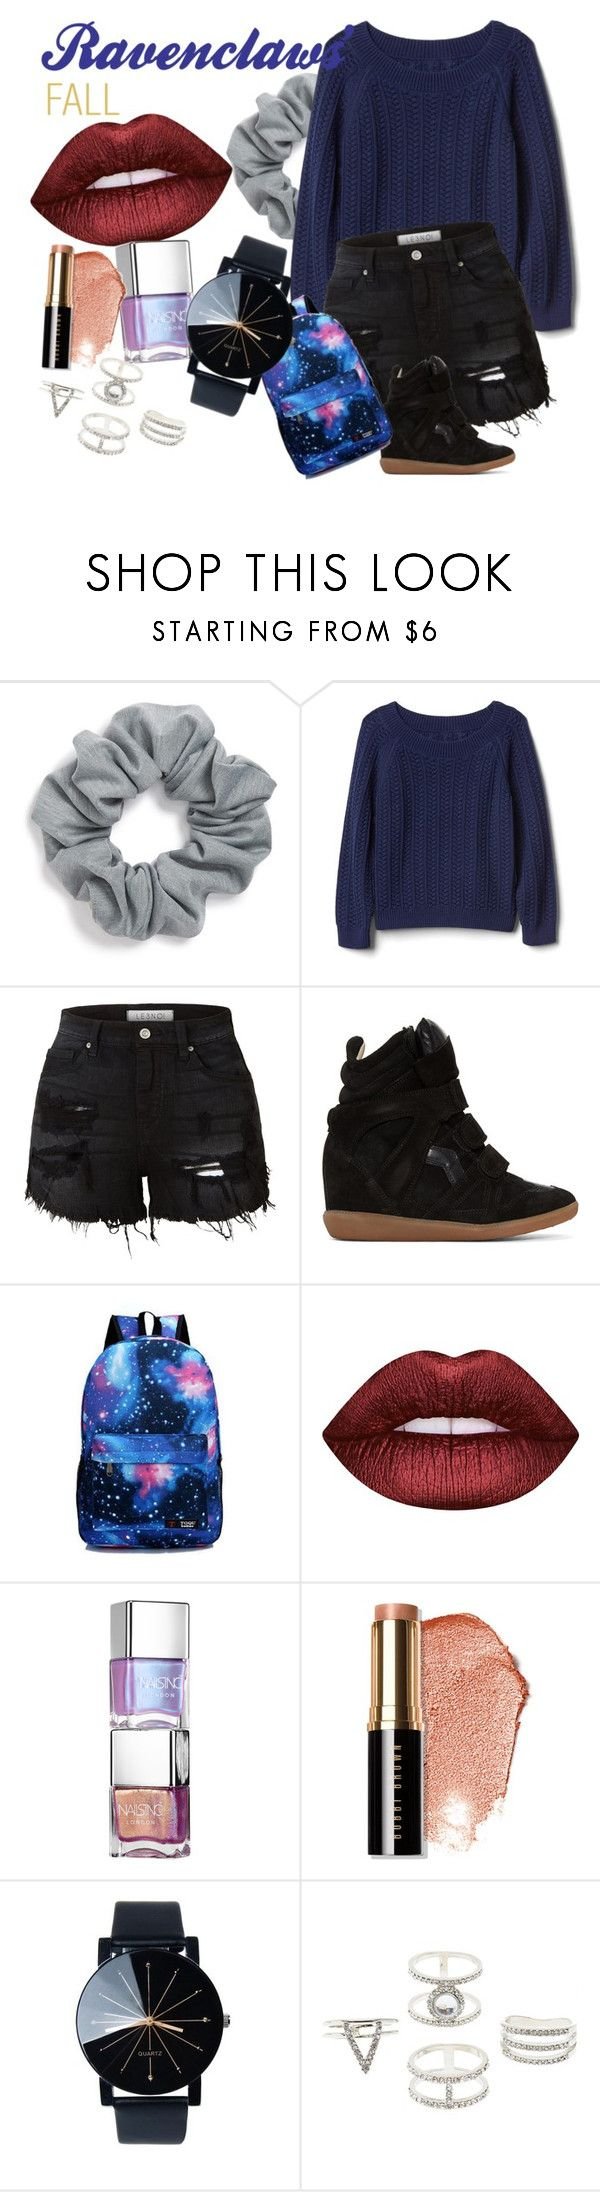 """""""Ravenclaws'FALL"""" by marynavarini ❤ liked on Polyvore featuring Natasha, Gap, LE3NO, Isabel Marant, Lime Crime, Bobbi Brown Cosmetics and Charlotte Russe"""